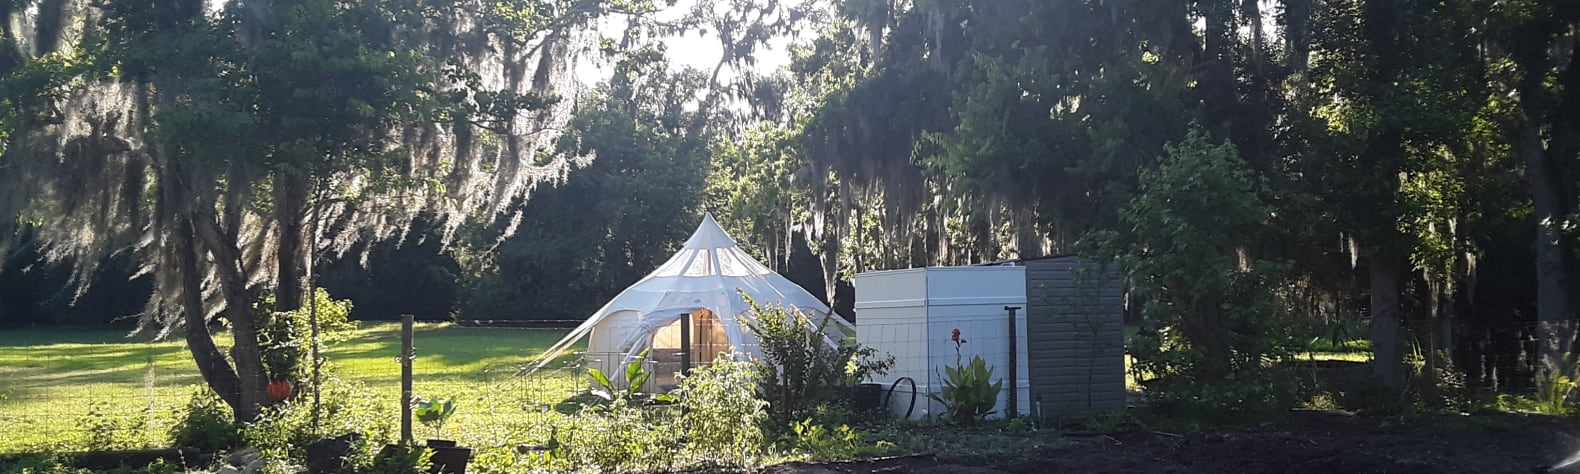 Camp s8int Augustine